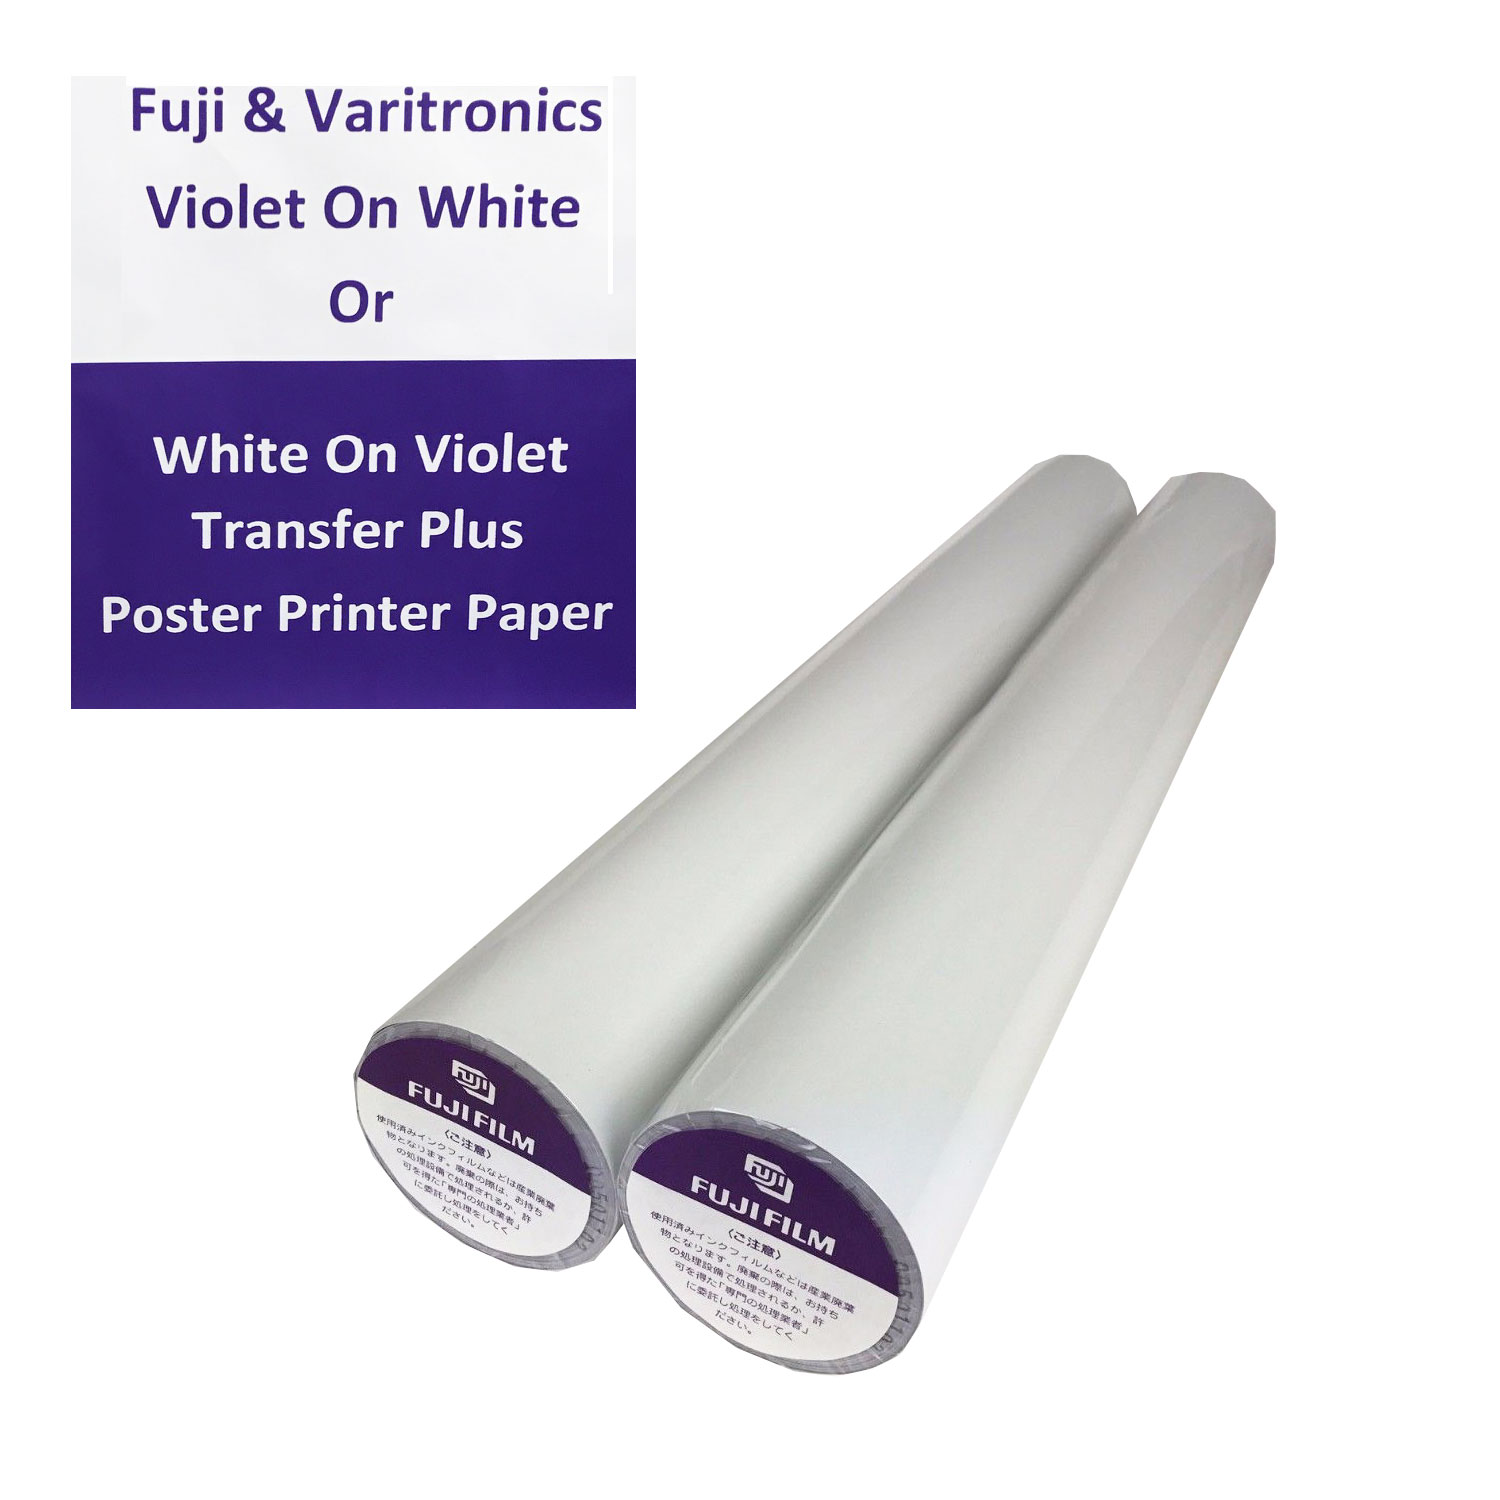 Fuji Violet On White TTP Thermal Paper Rolls (2)